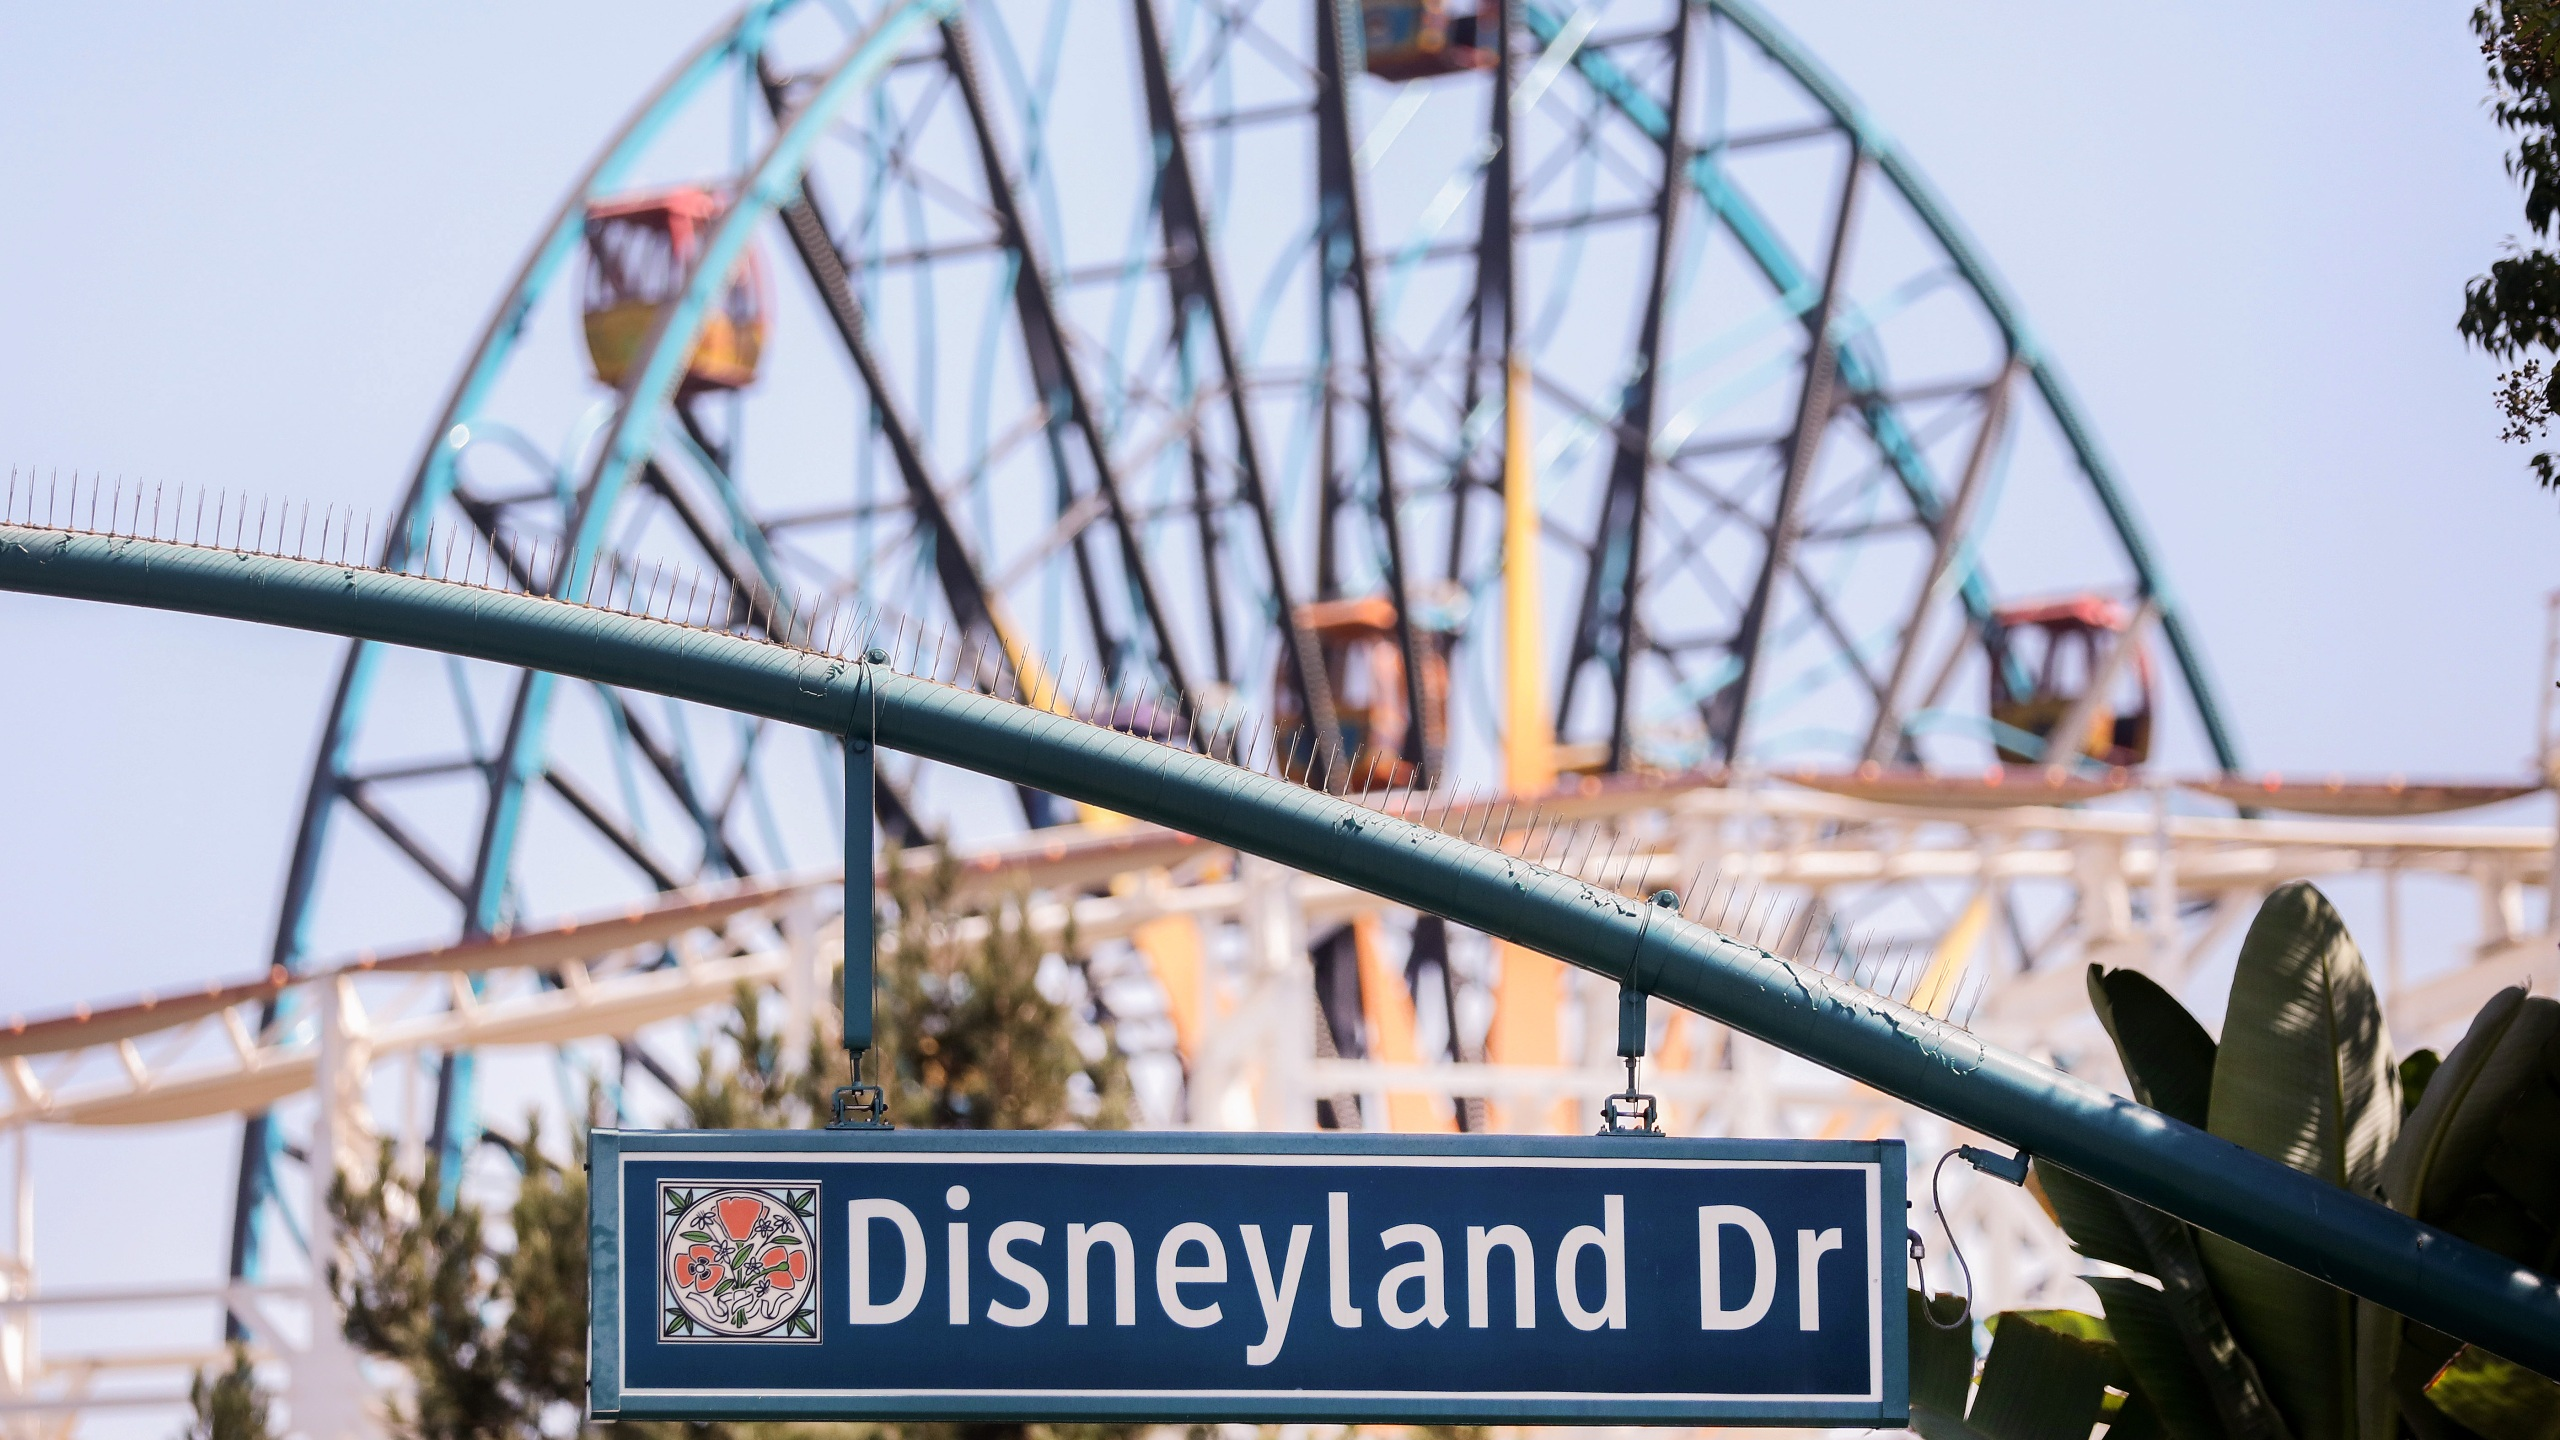 A sign for Disneyland Drive hangs near empty amusement rides on Sept. 30, 2020, in Anaheim, California.(Mario Tama/Getty Images)